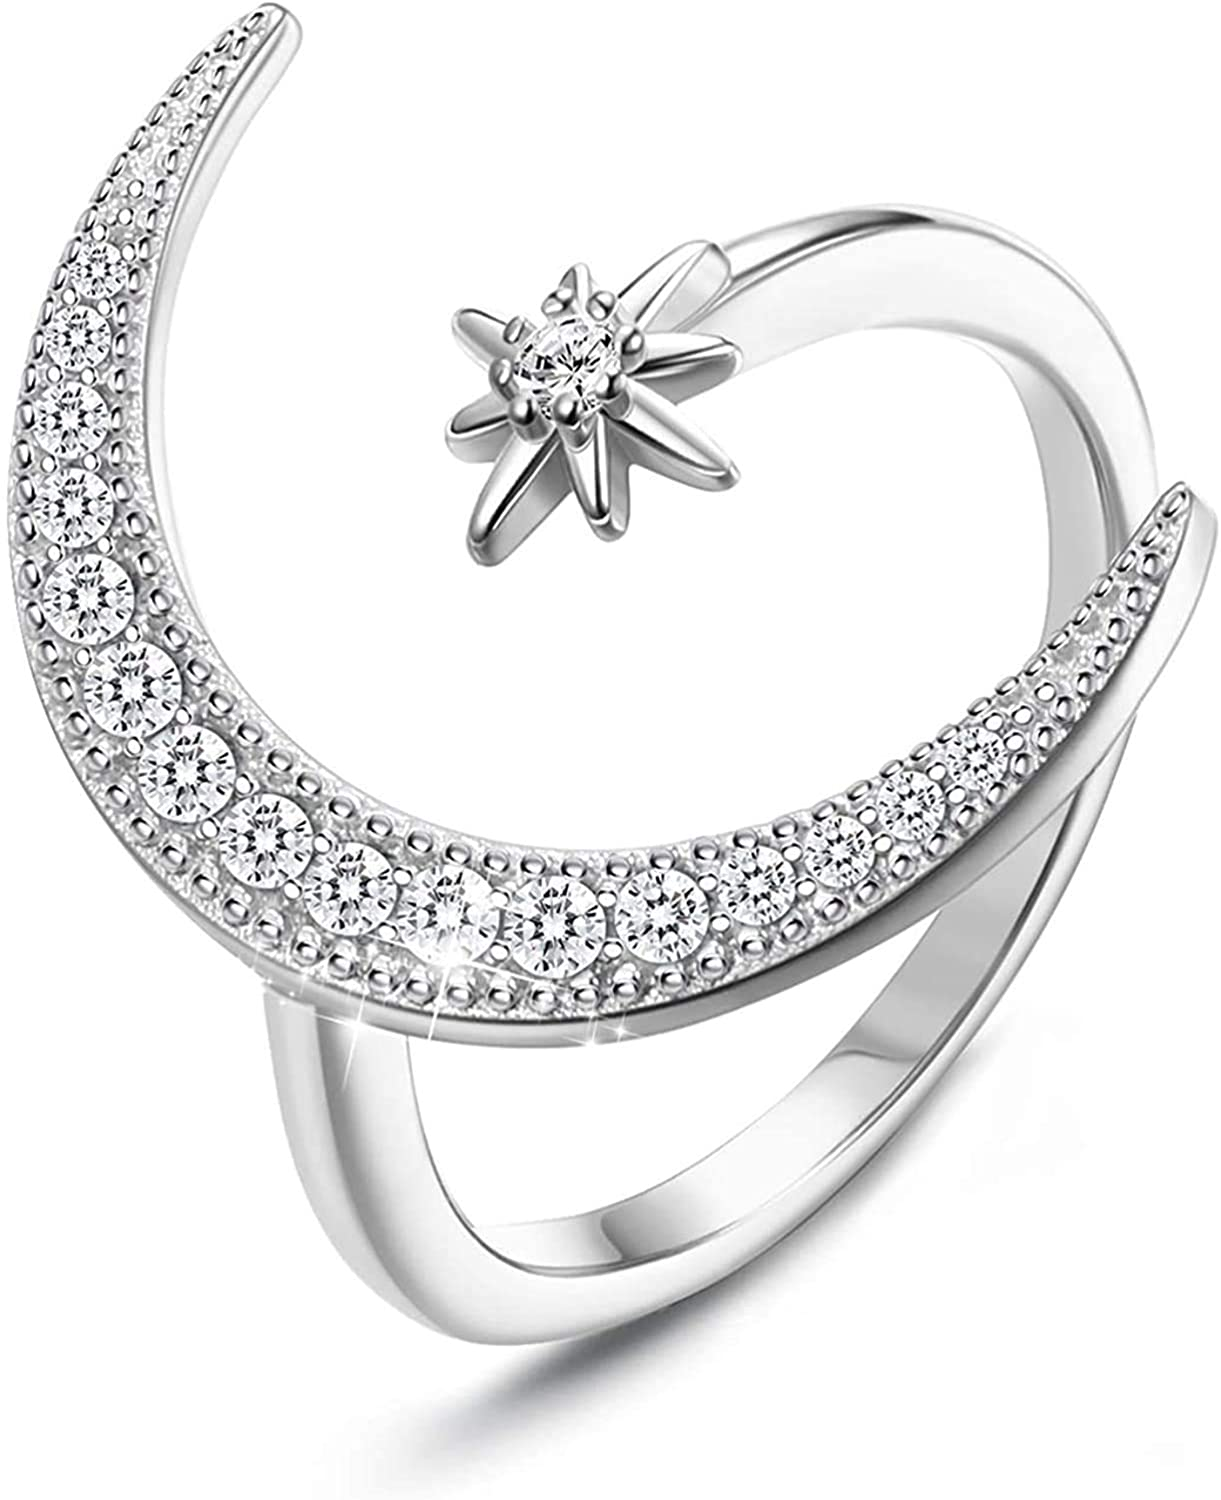 Milacolato Online limited product Sterling Brand Cheap Sale Venue Silver Moon Rings Plati women Adjustable for